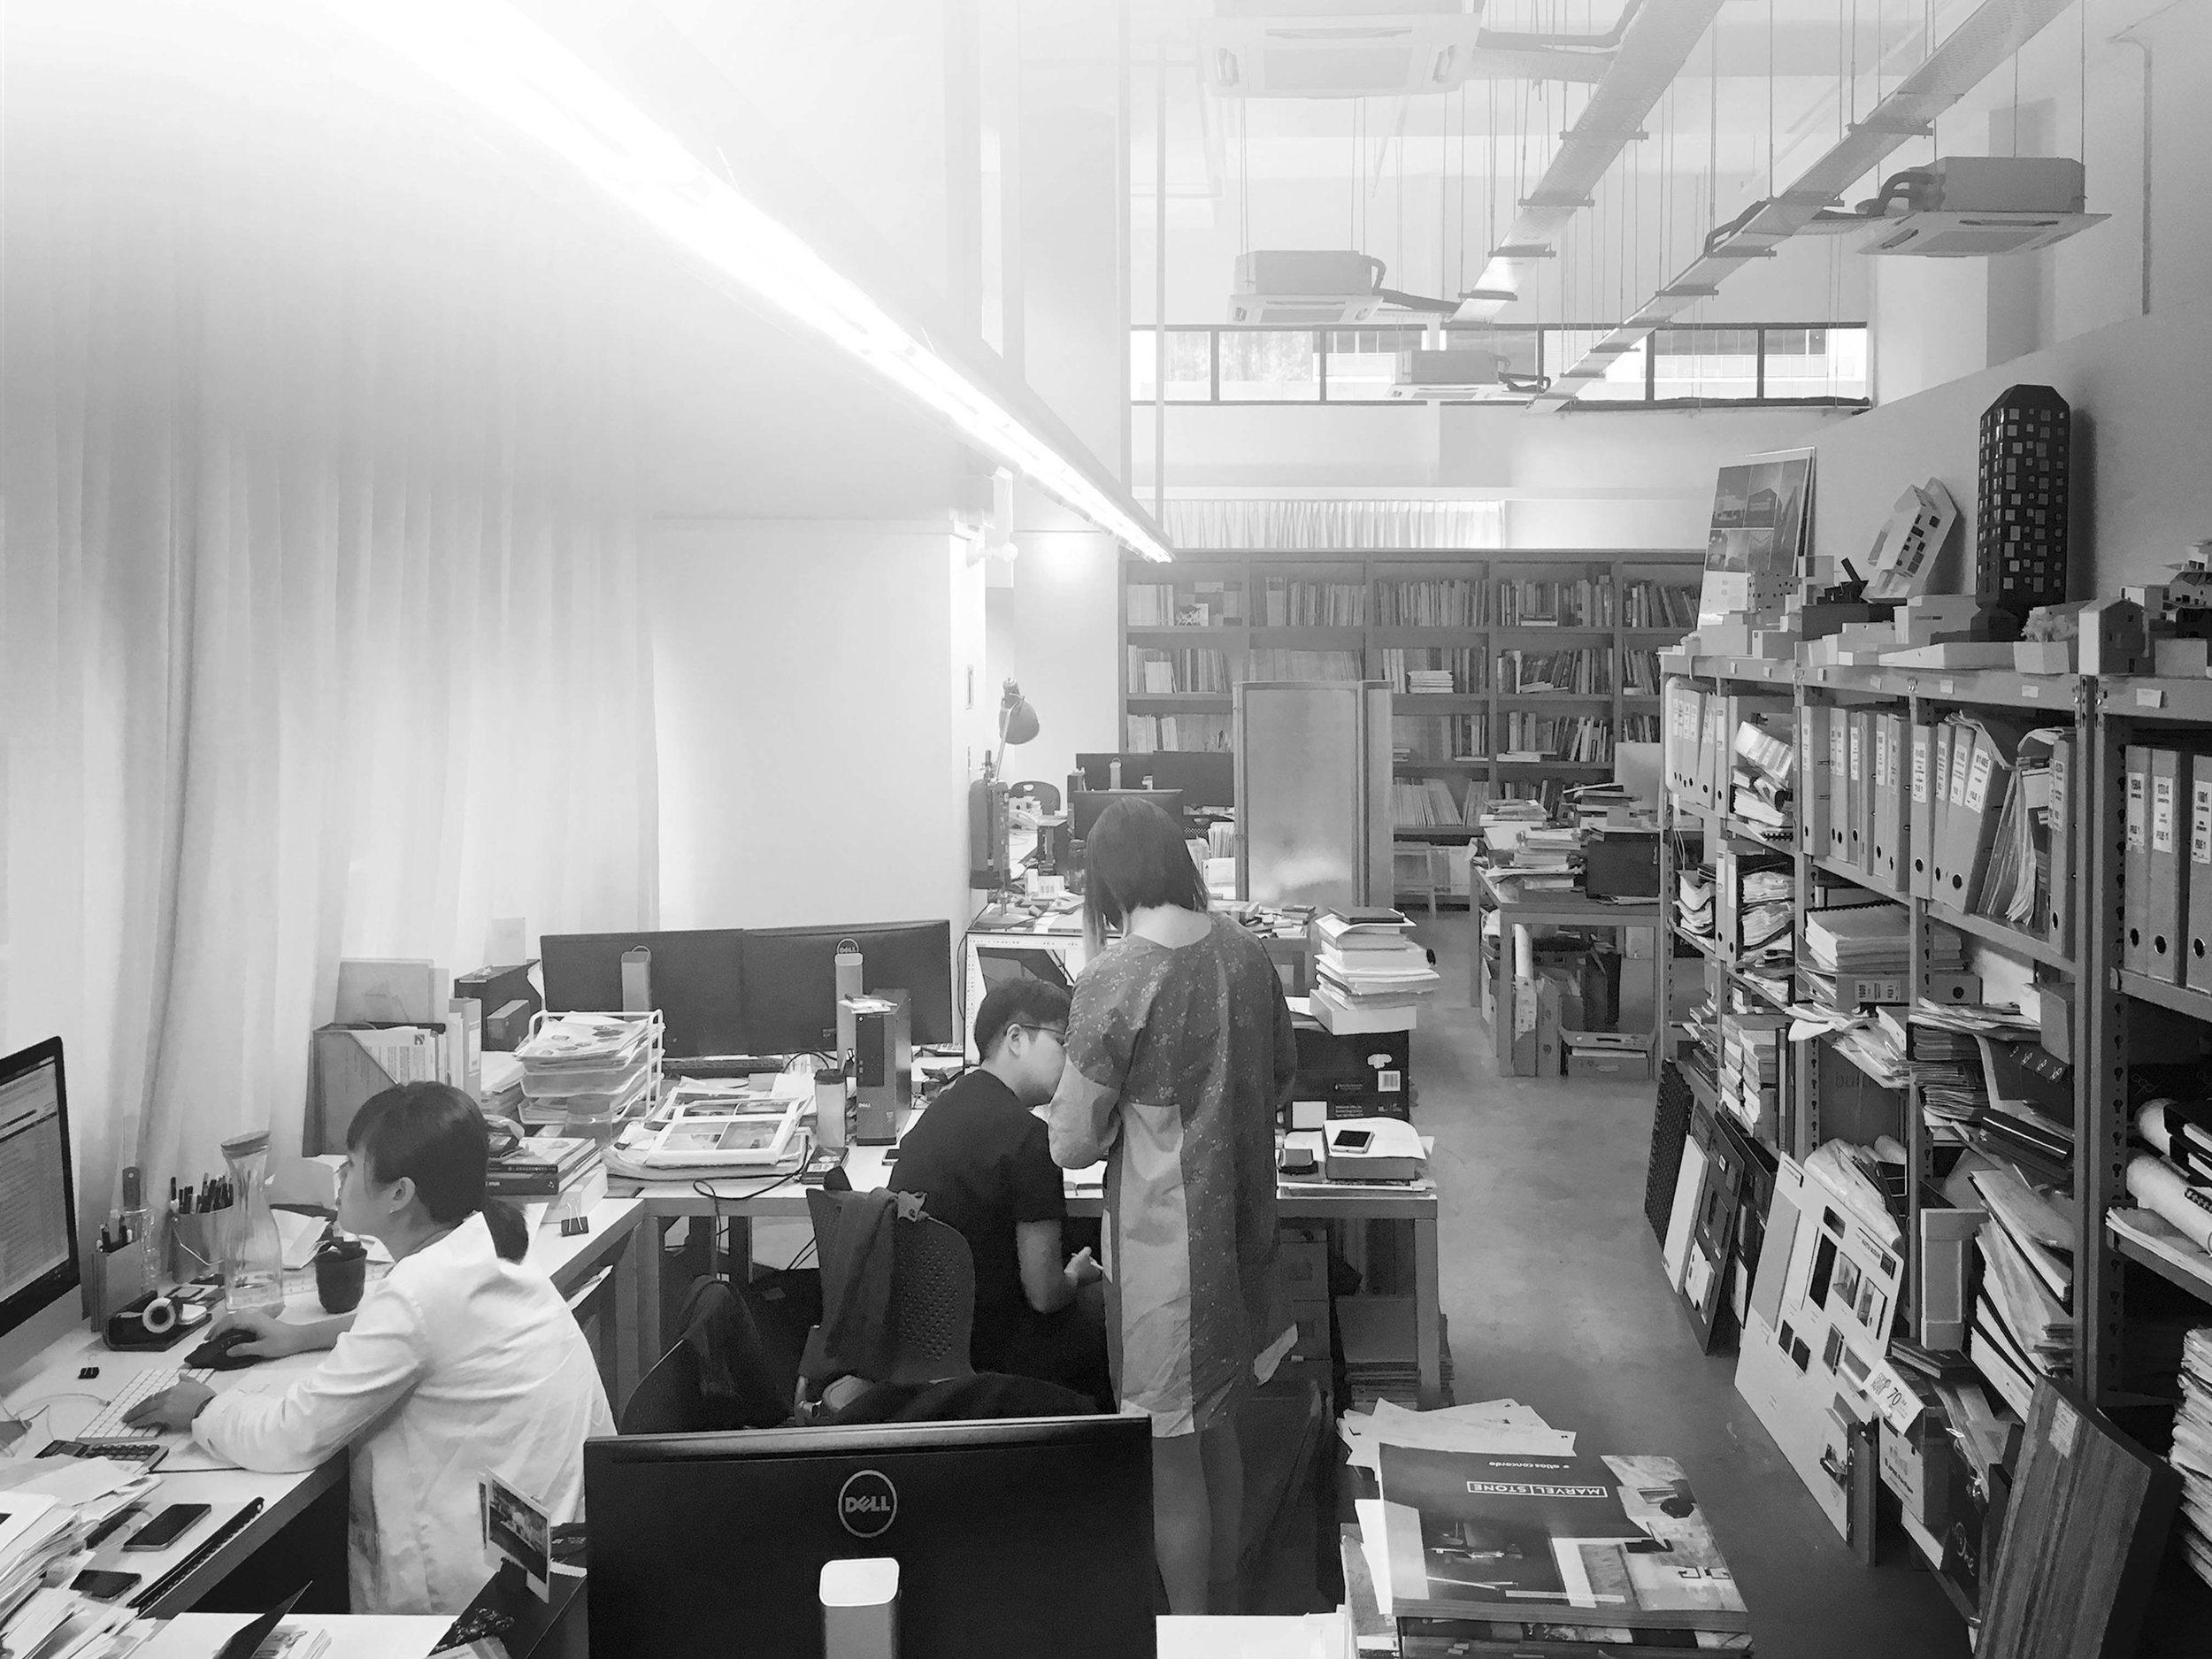 office interior bw.jpg